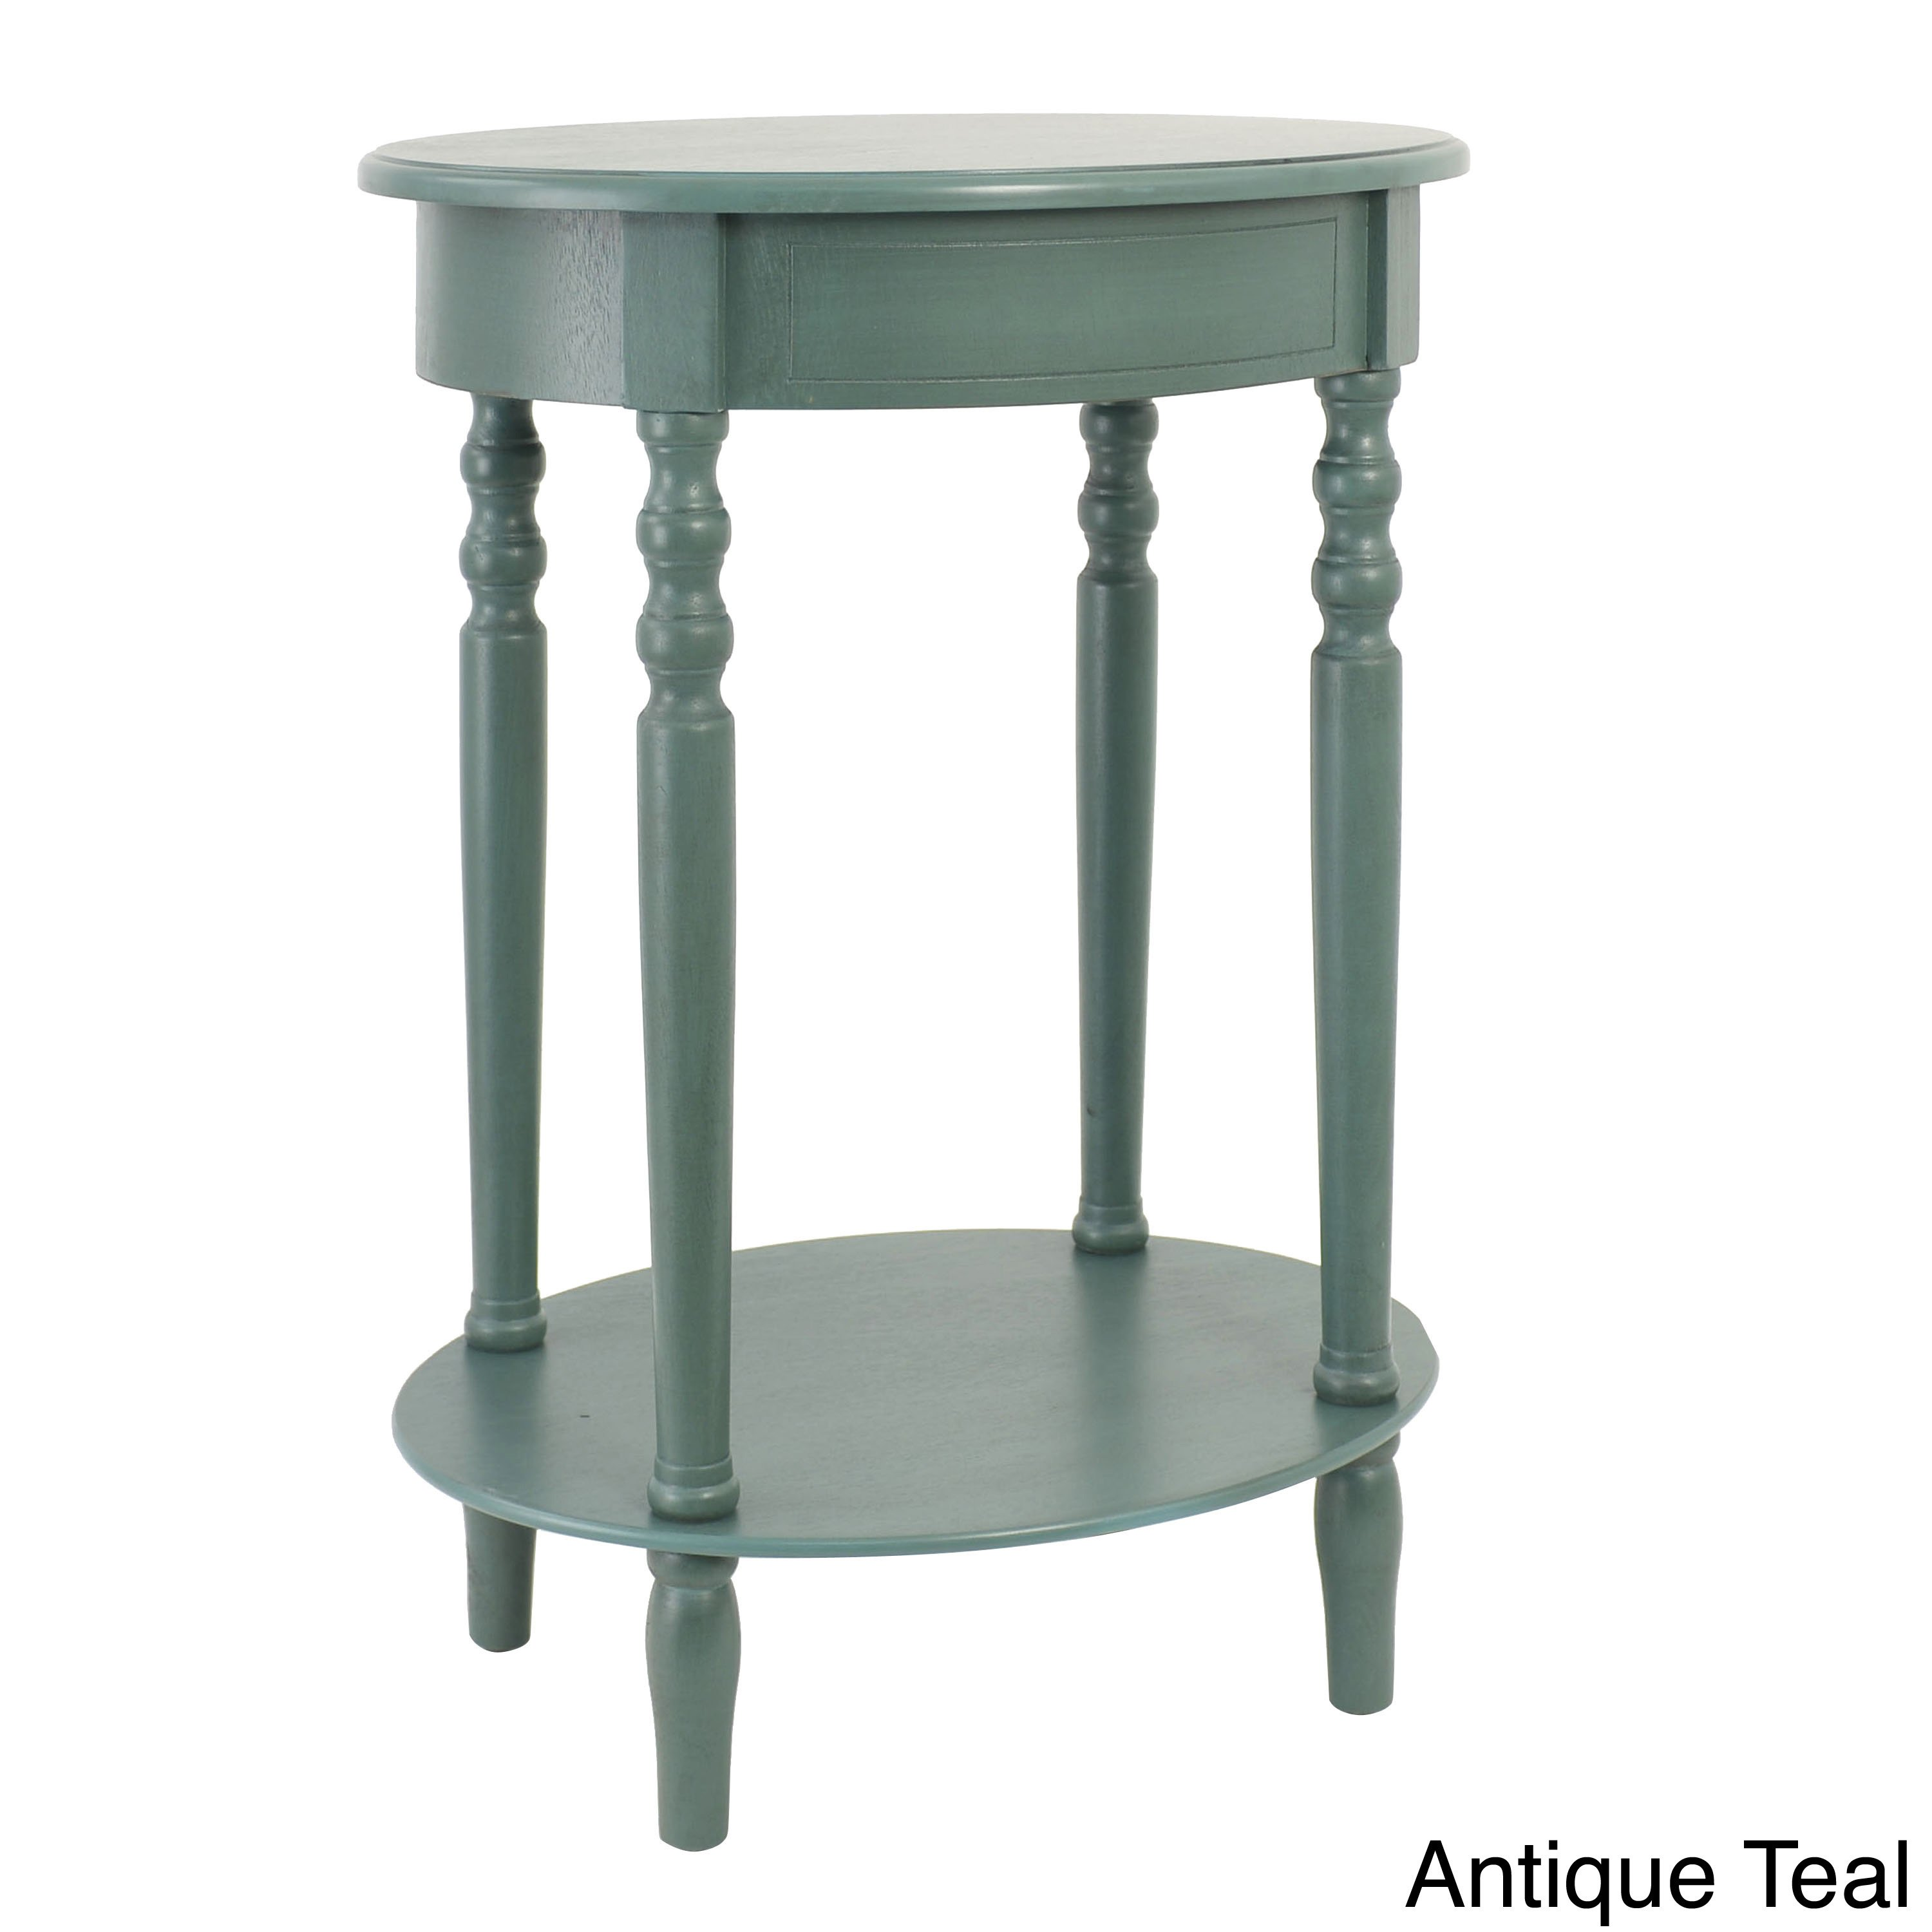 maison rouge provins oval accent table wood finish espresso teal blue antique inch bistro front porch furniture sets white drop leaf modern nesting side tables mirrored tray